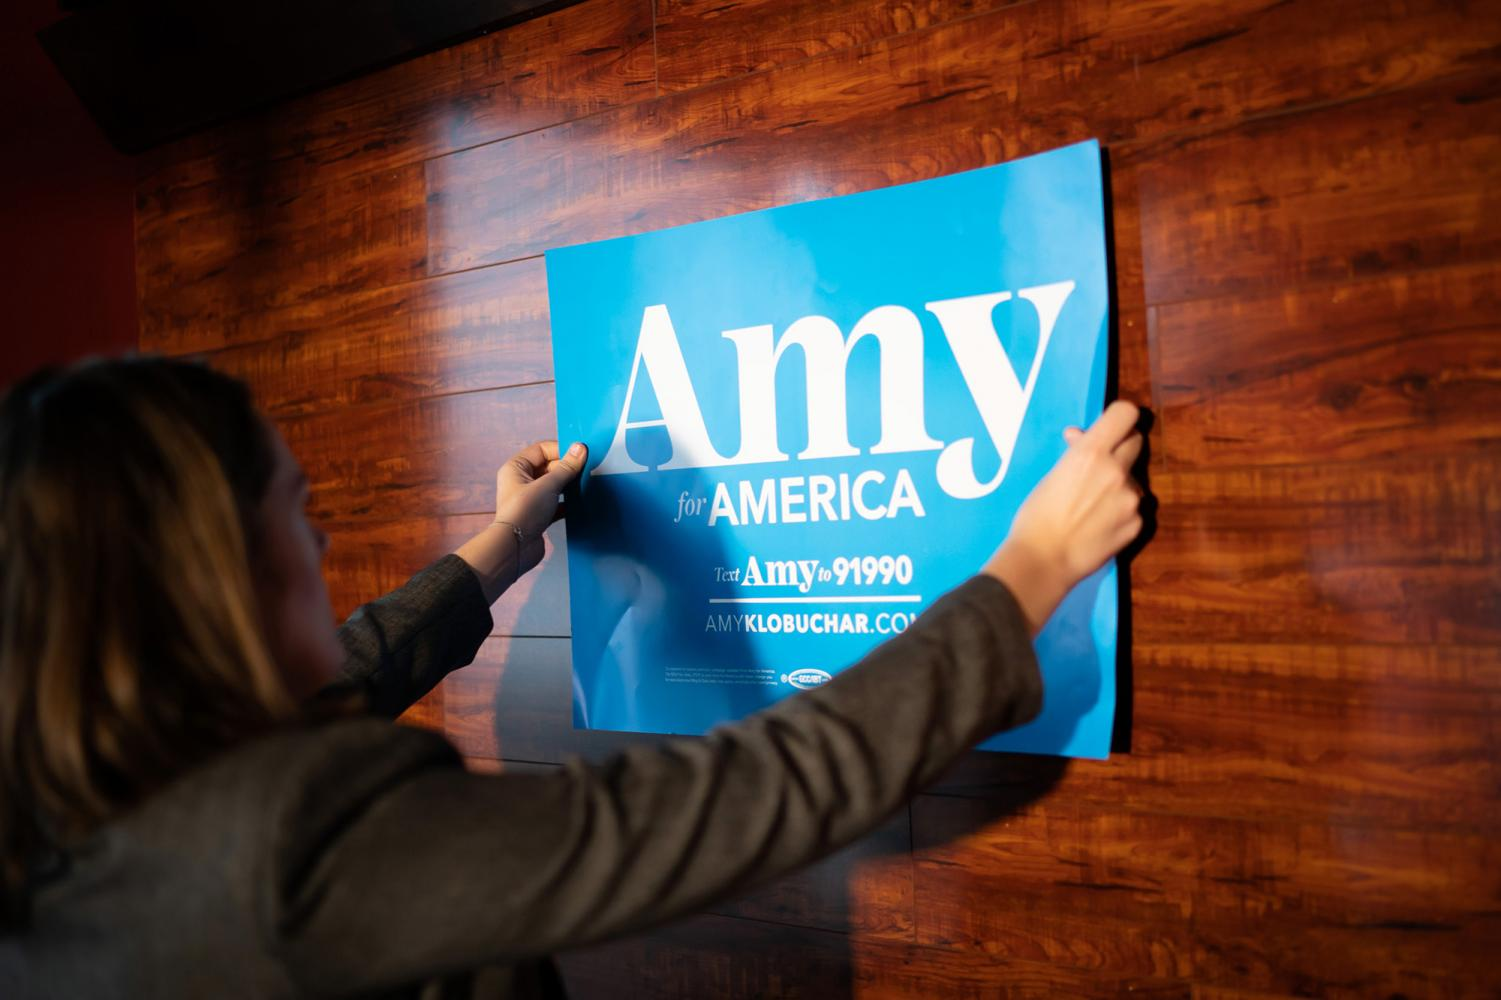 Staffer Greta Oanes tapes a Klobuchar sign on the wall, where Amy Klobuchar would speak to the Marion County Democrats, at a soup luncheon on Sunday, February 17, 2019 at Peace Tree Brewing Company in Knoxville, Iowa.